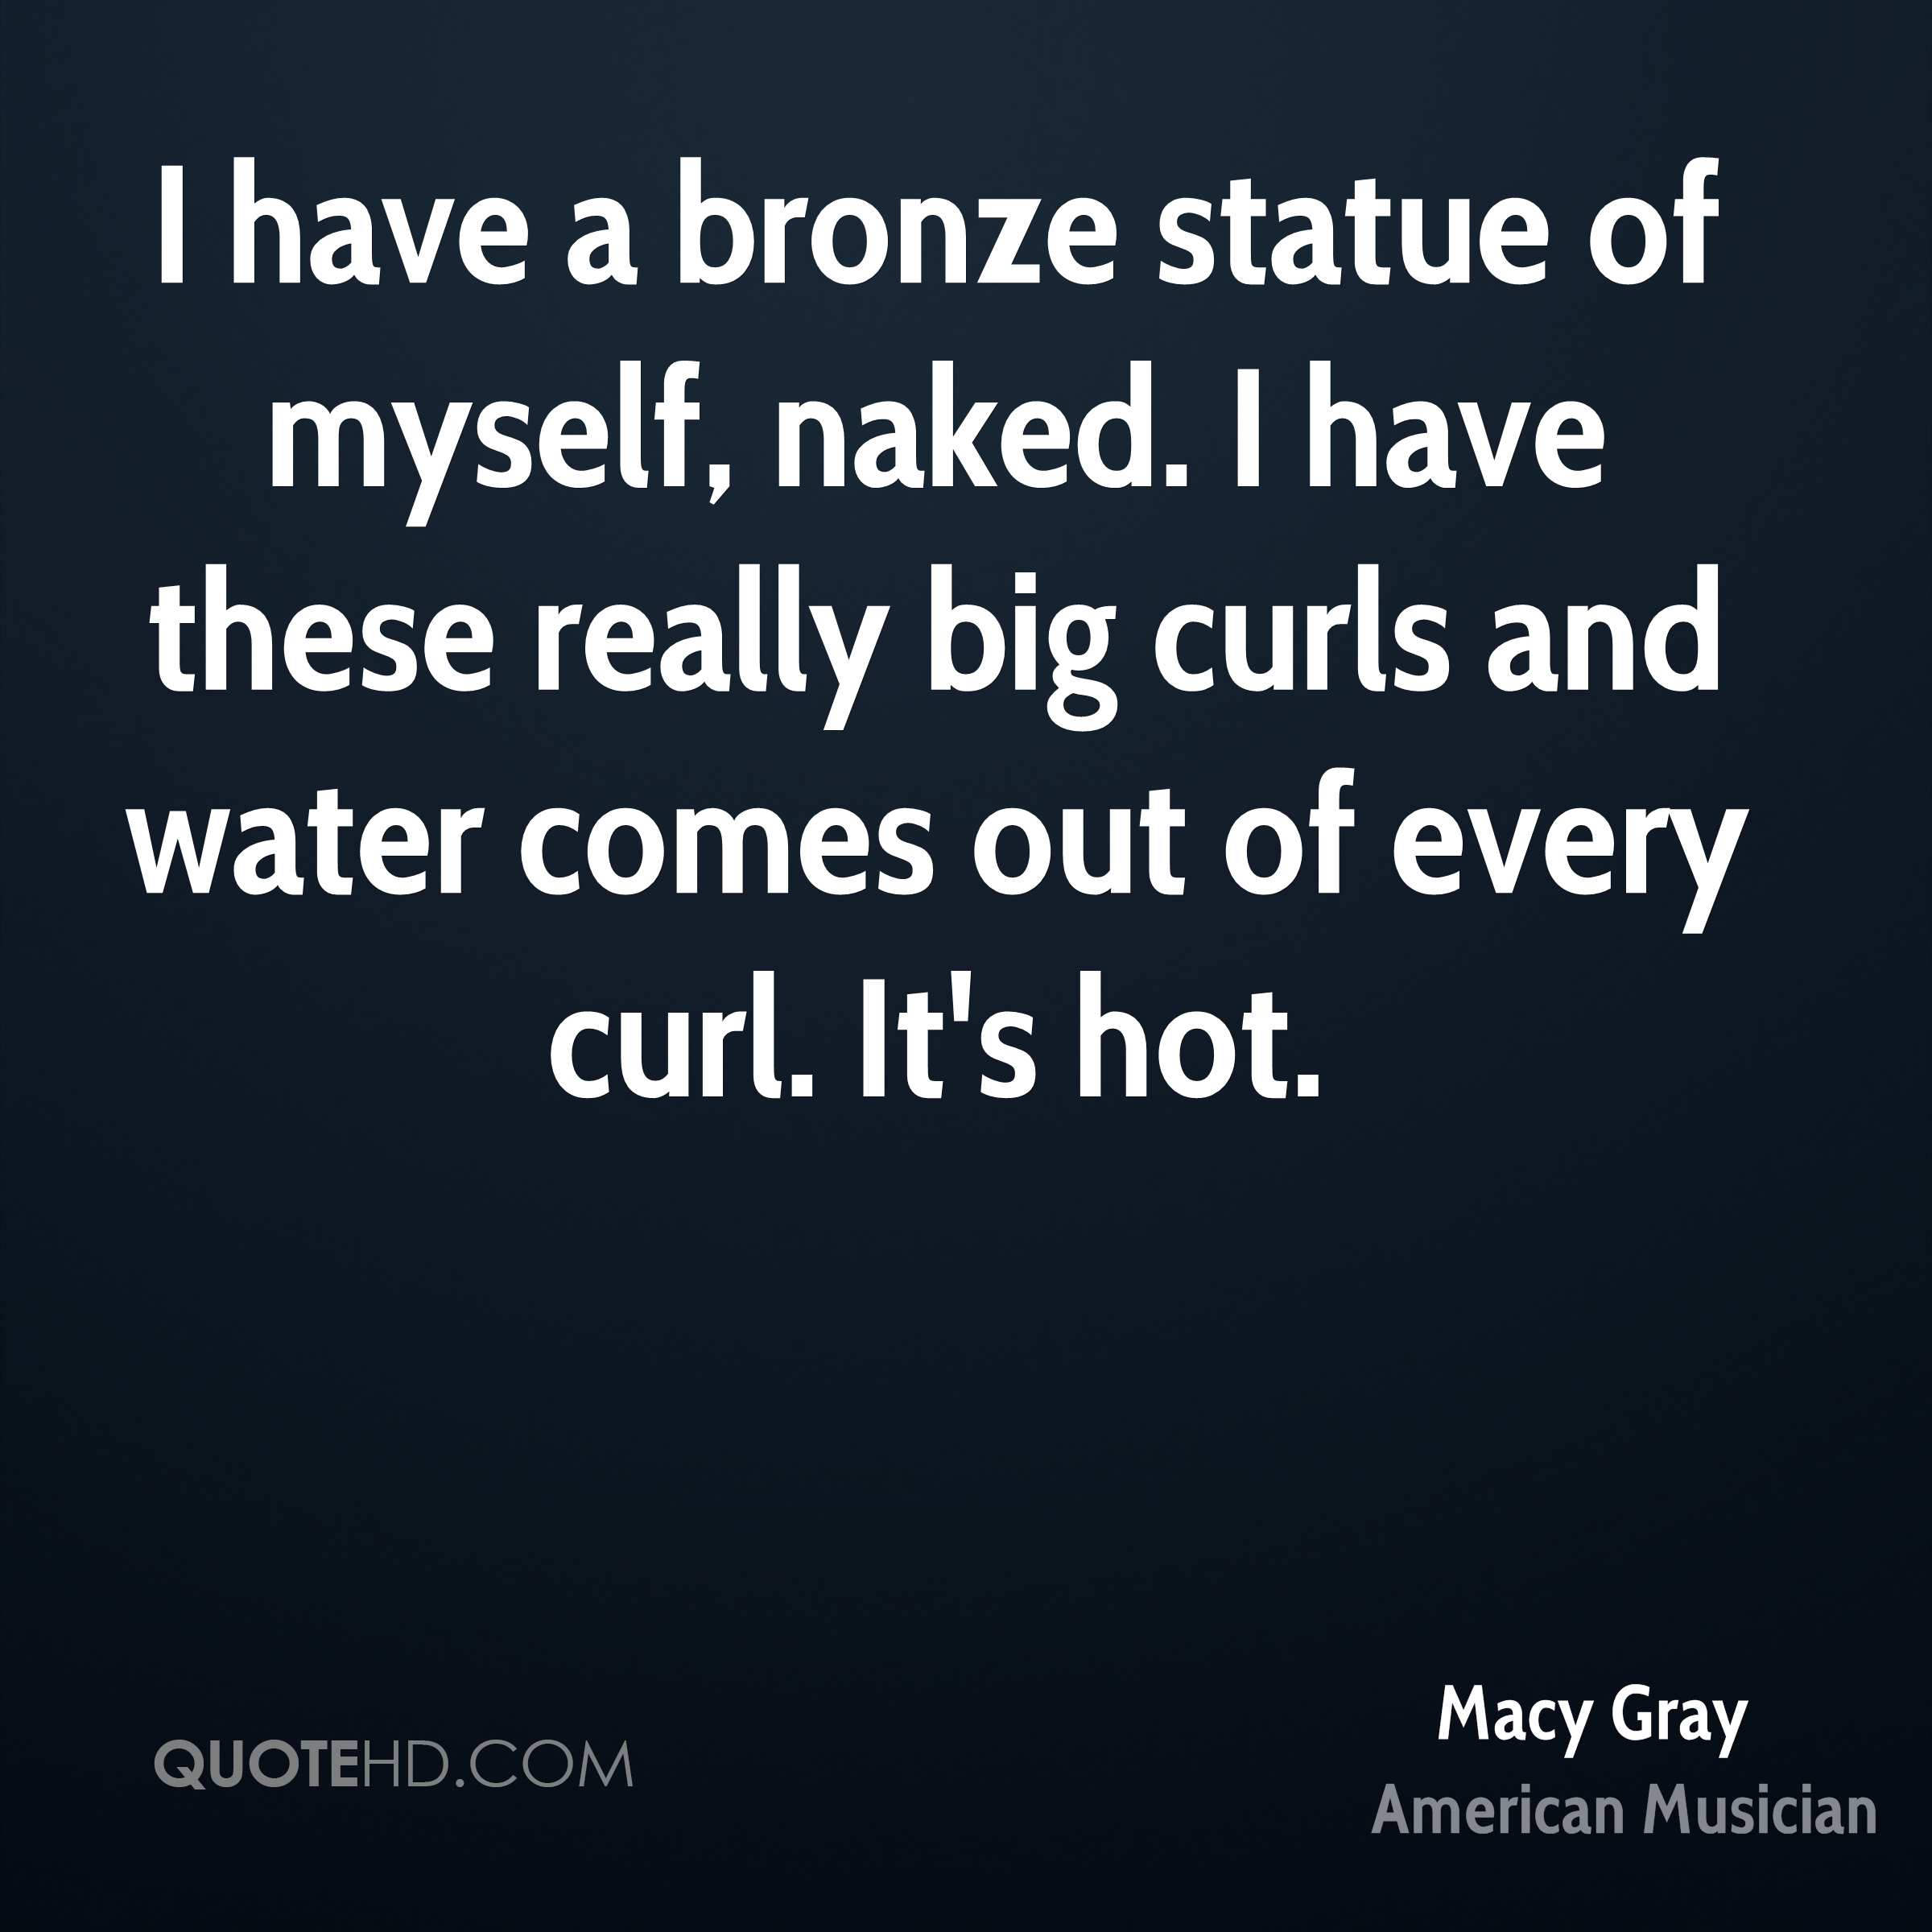 I have a bronze statue of myself, naked. I have these really big curls and water comes out of every curl. It's hot.